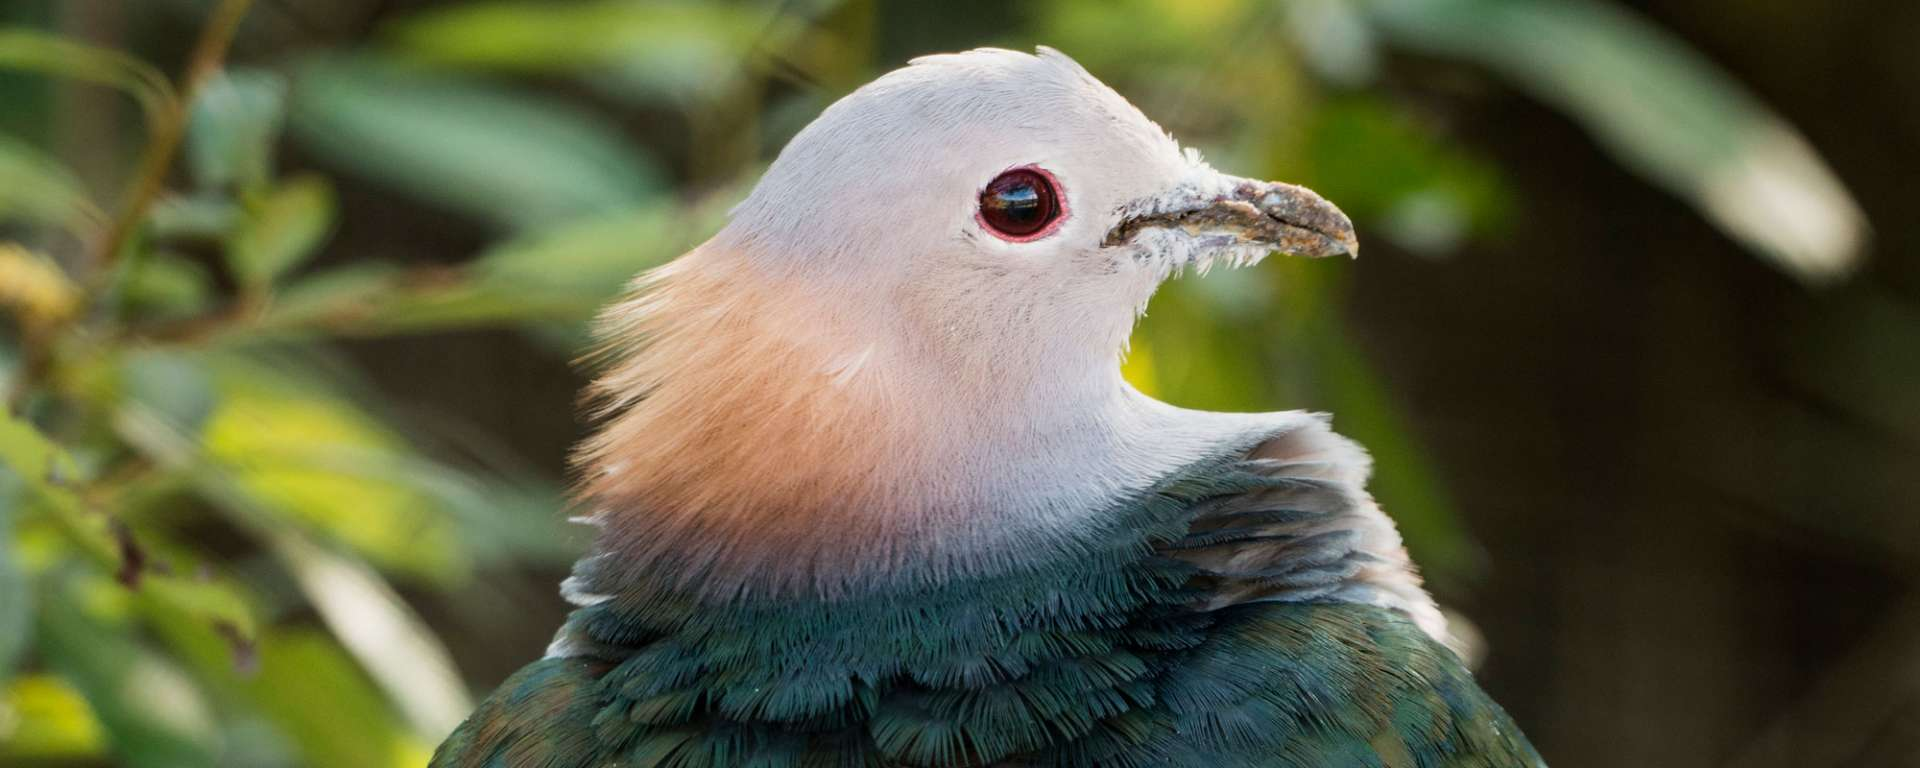 Green Imperial Pigeon by Charlie Morey